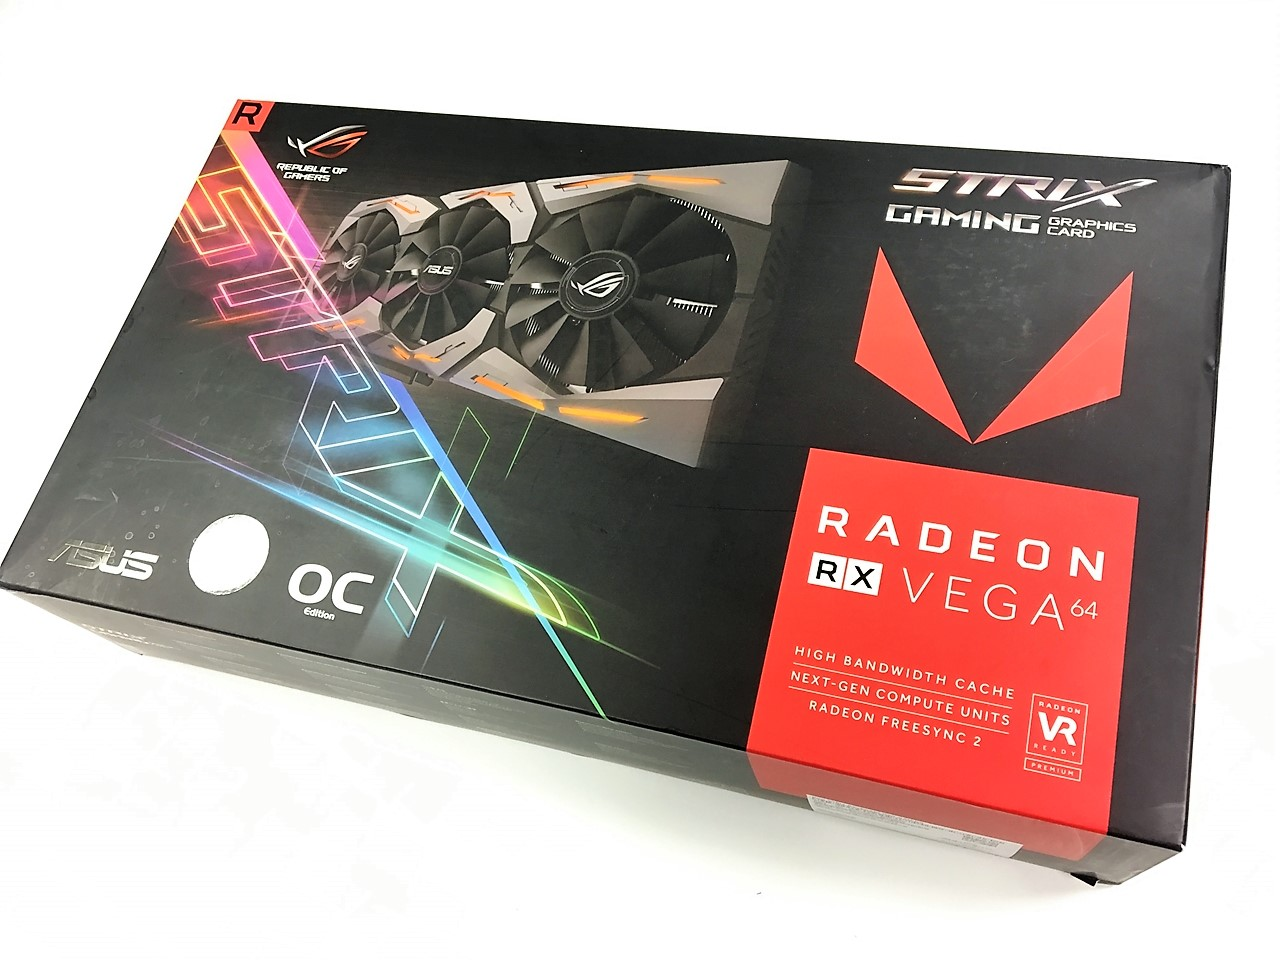 Asus ROG Strix Radeon RX Vega 64 Graphics Card Review - FunkyKit